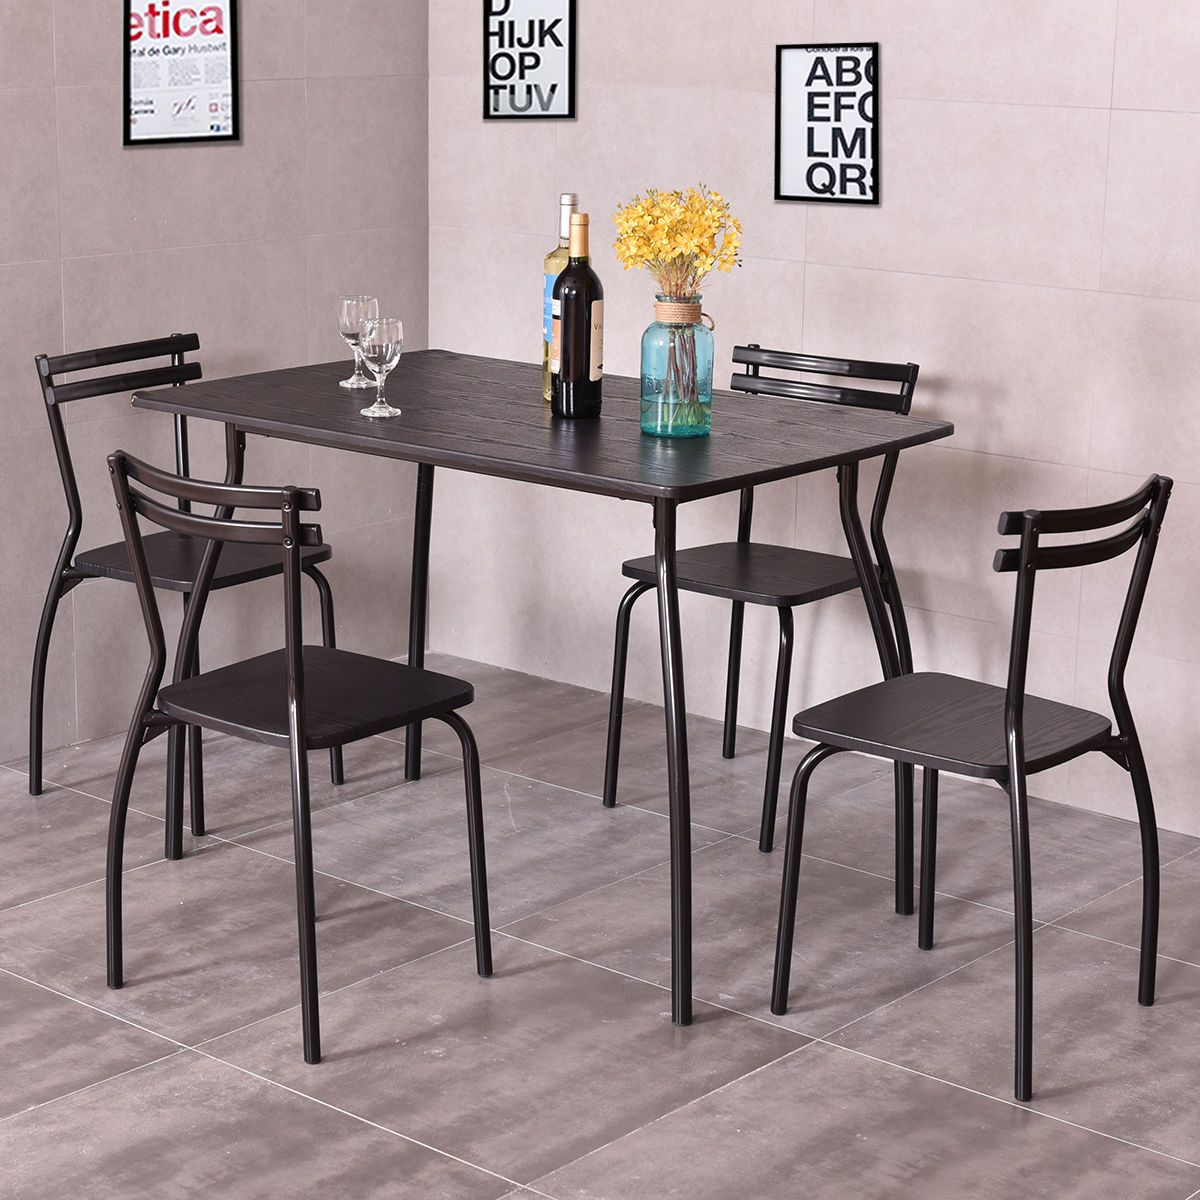 Home In 2020 Dining Room Sets Dining Table Chairs Dining Table